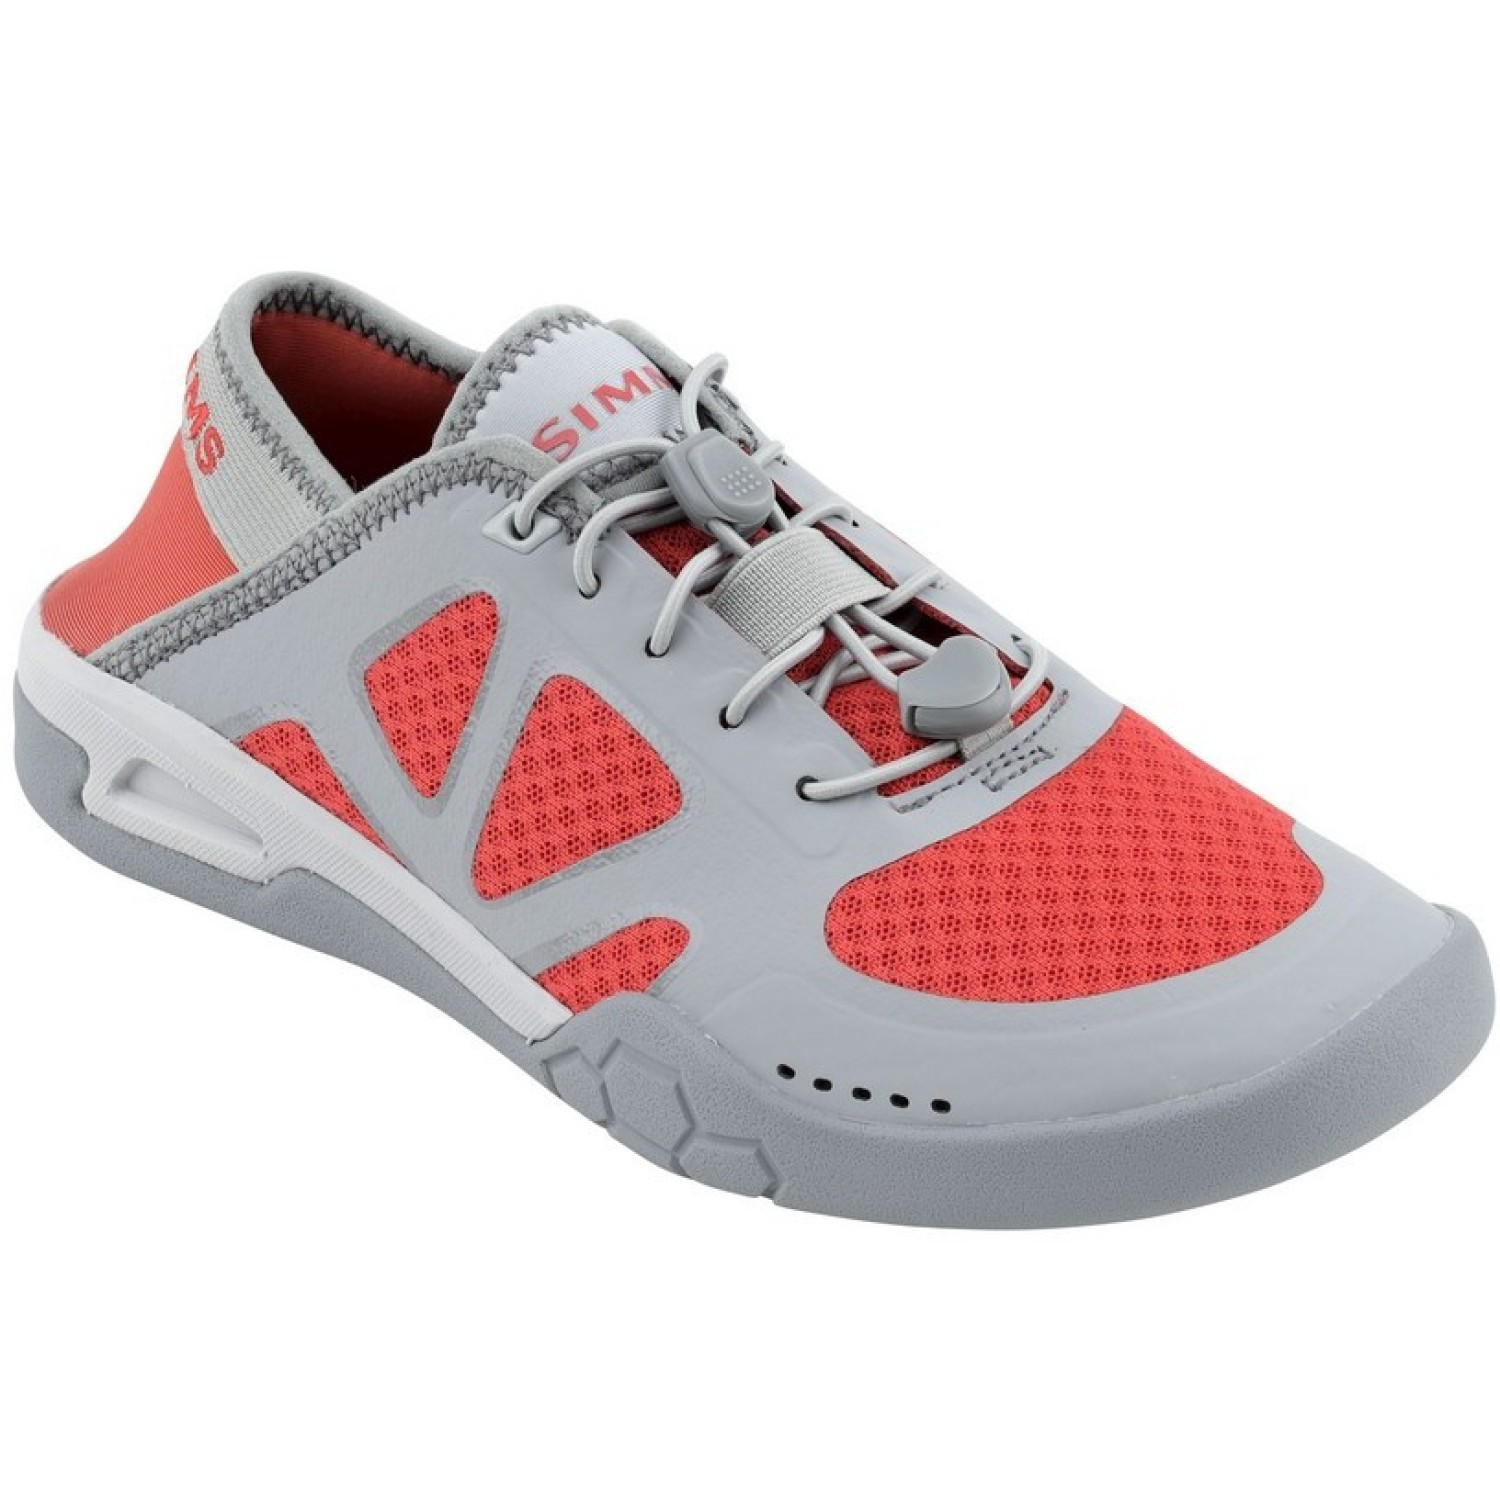 Simms Women's Currents Shoe Blossom